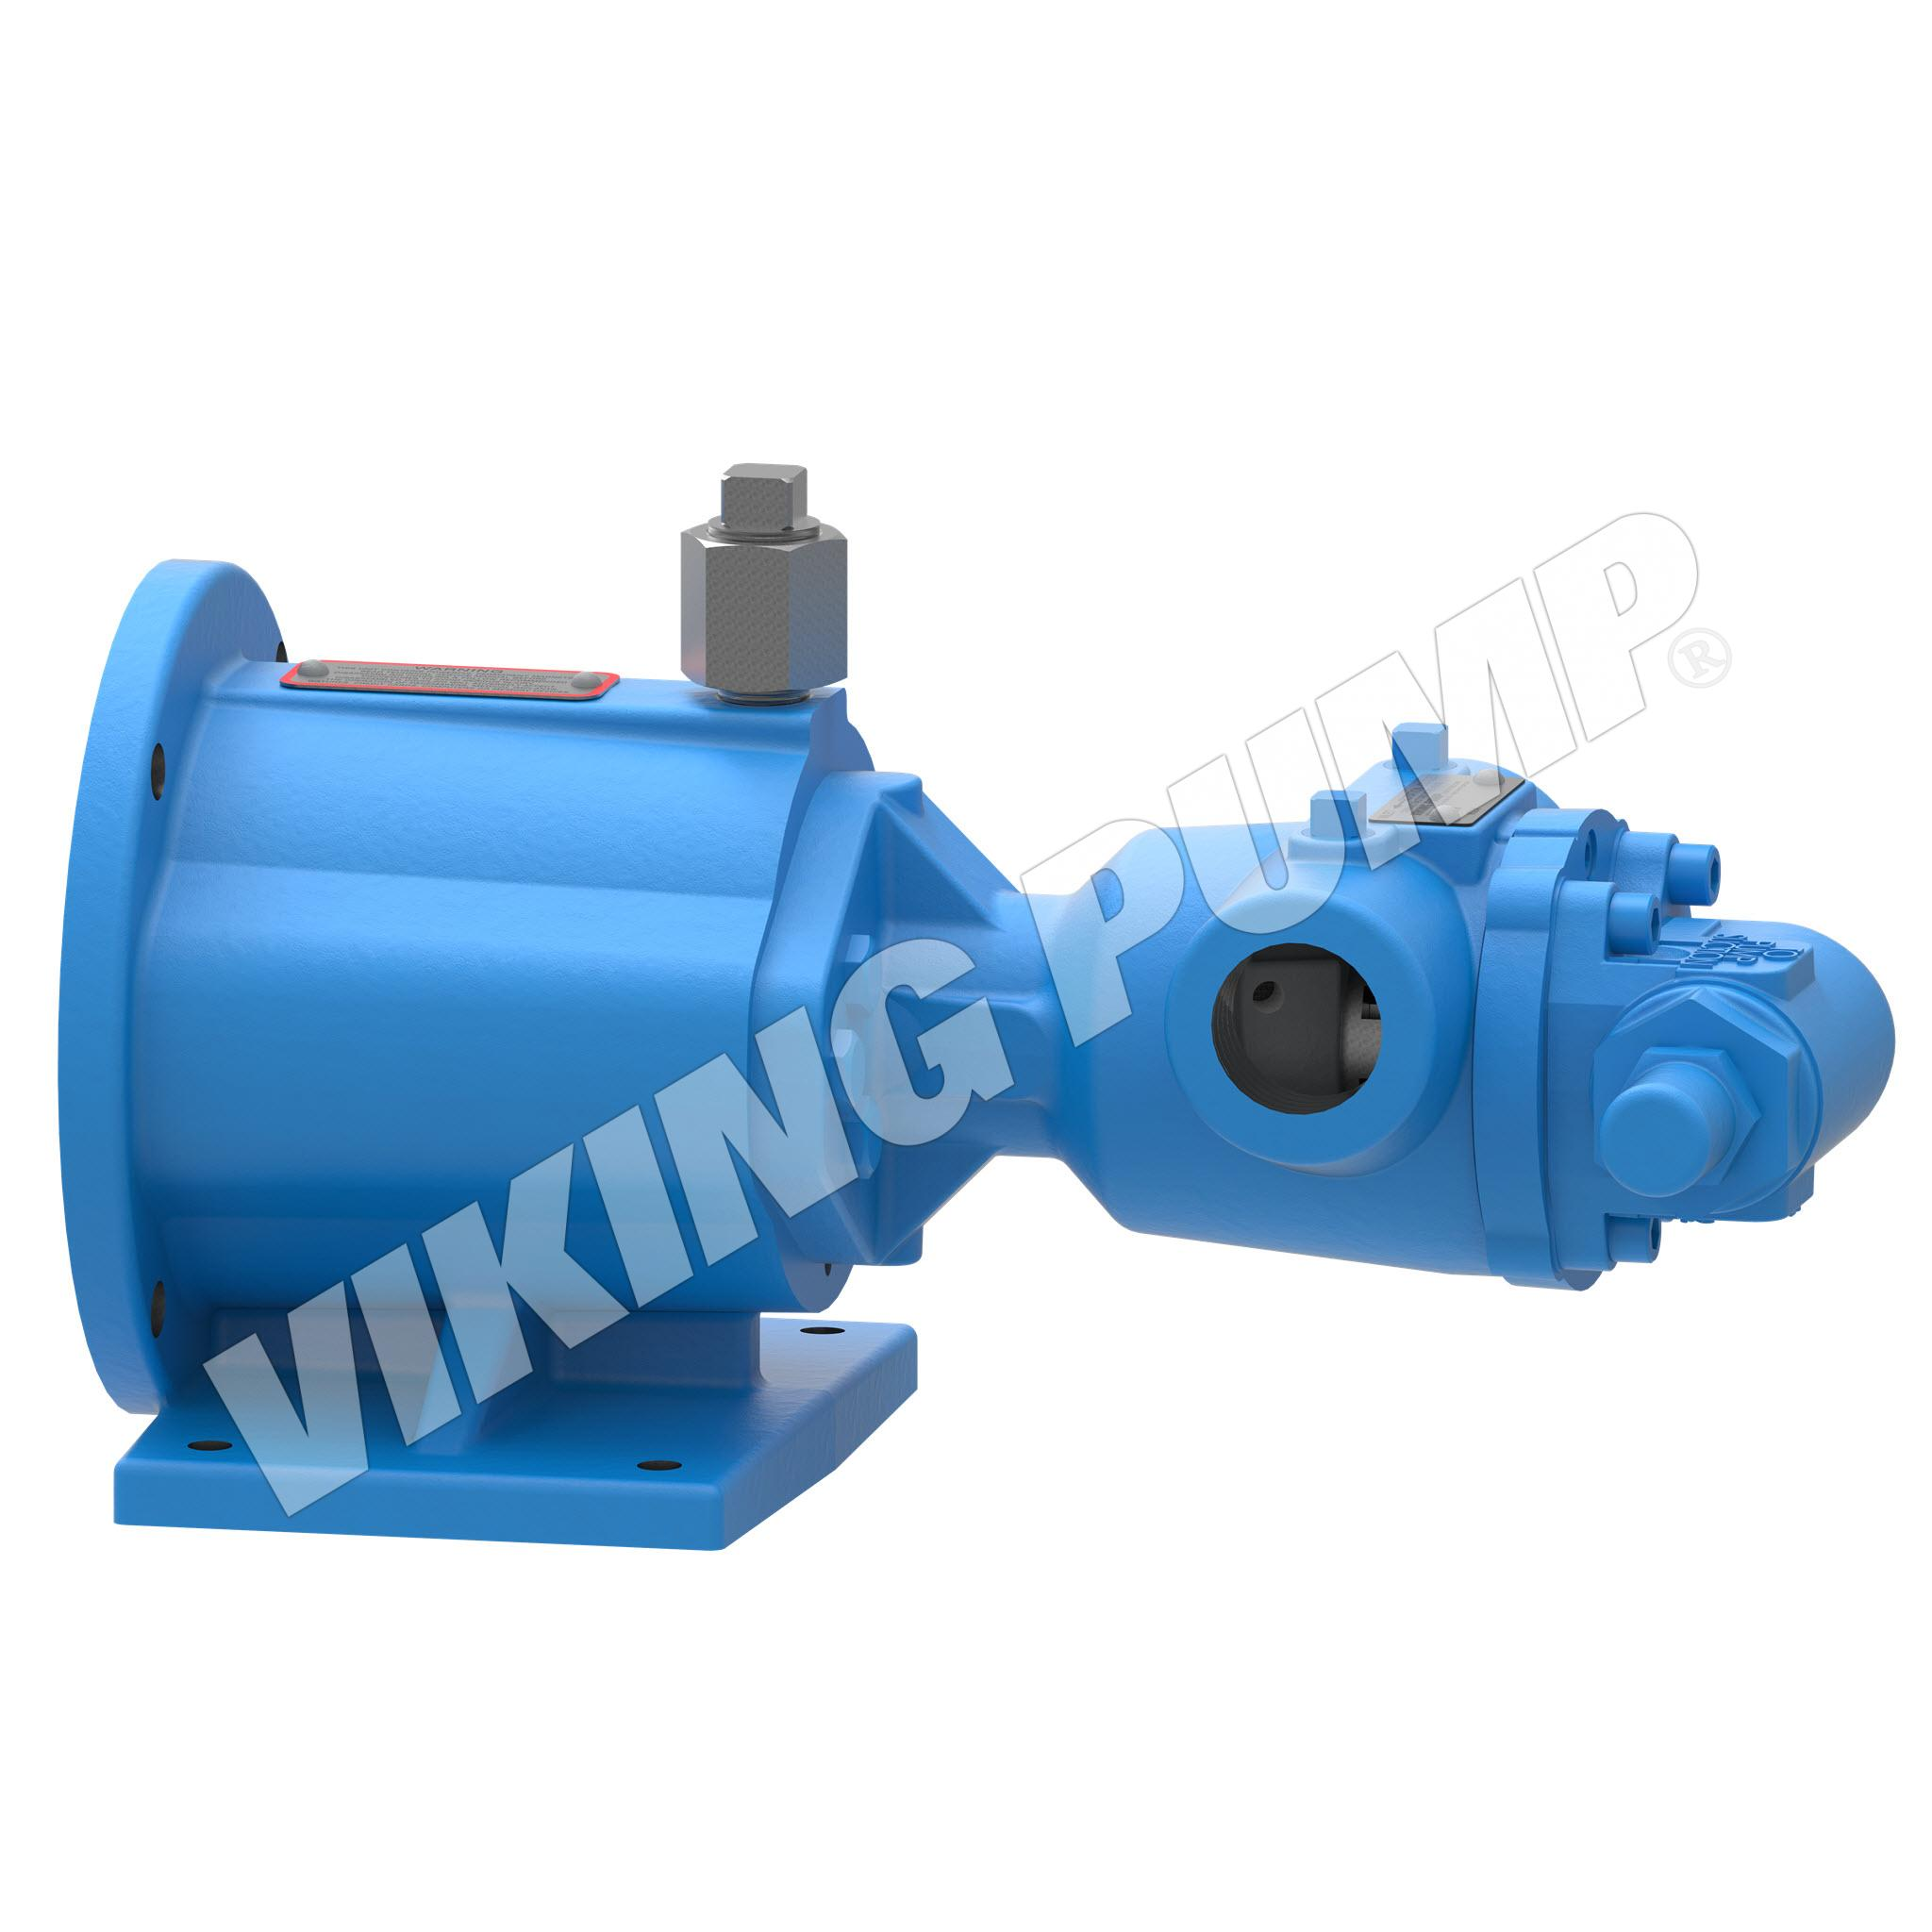 Model GG895, Footed Coupling, Motor Mount, Mag Drive, Relief Valve Pump